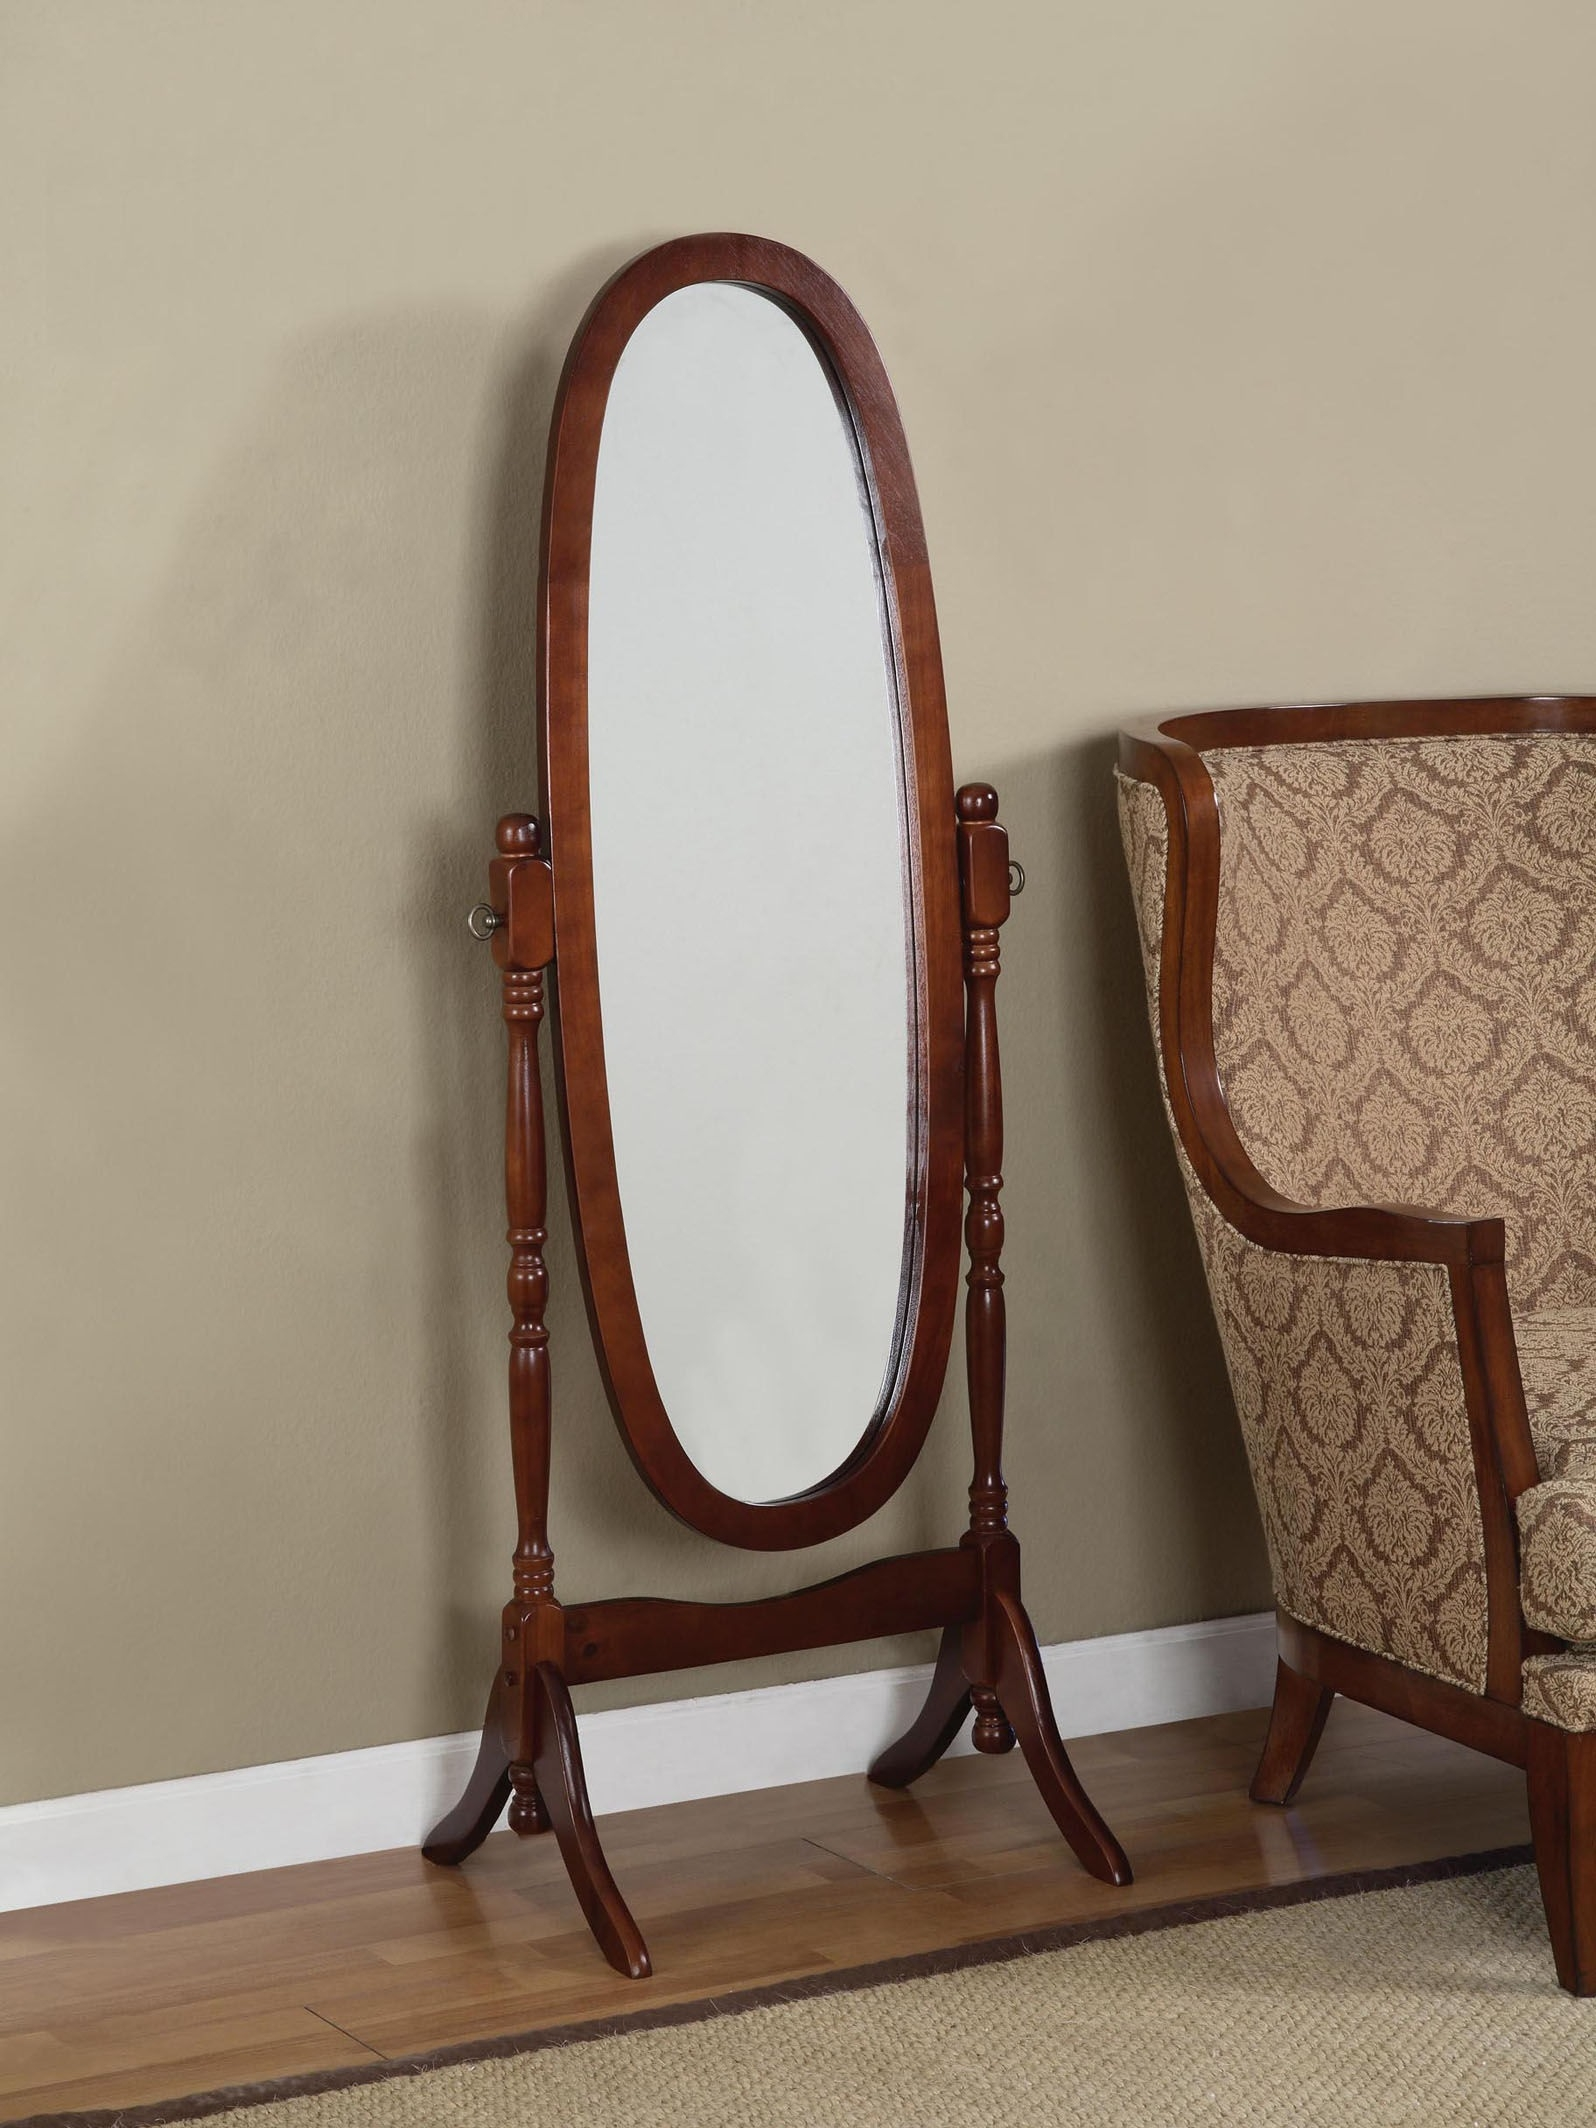 Bedroom Furniture Unique Mirrors Full Length Mirror Small With Oval Freestanding Mirror (Image 2 of 15)